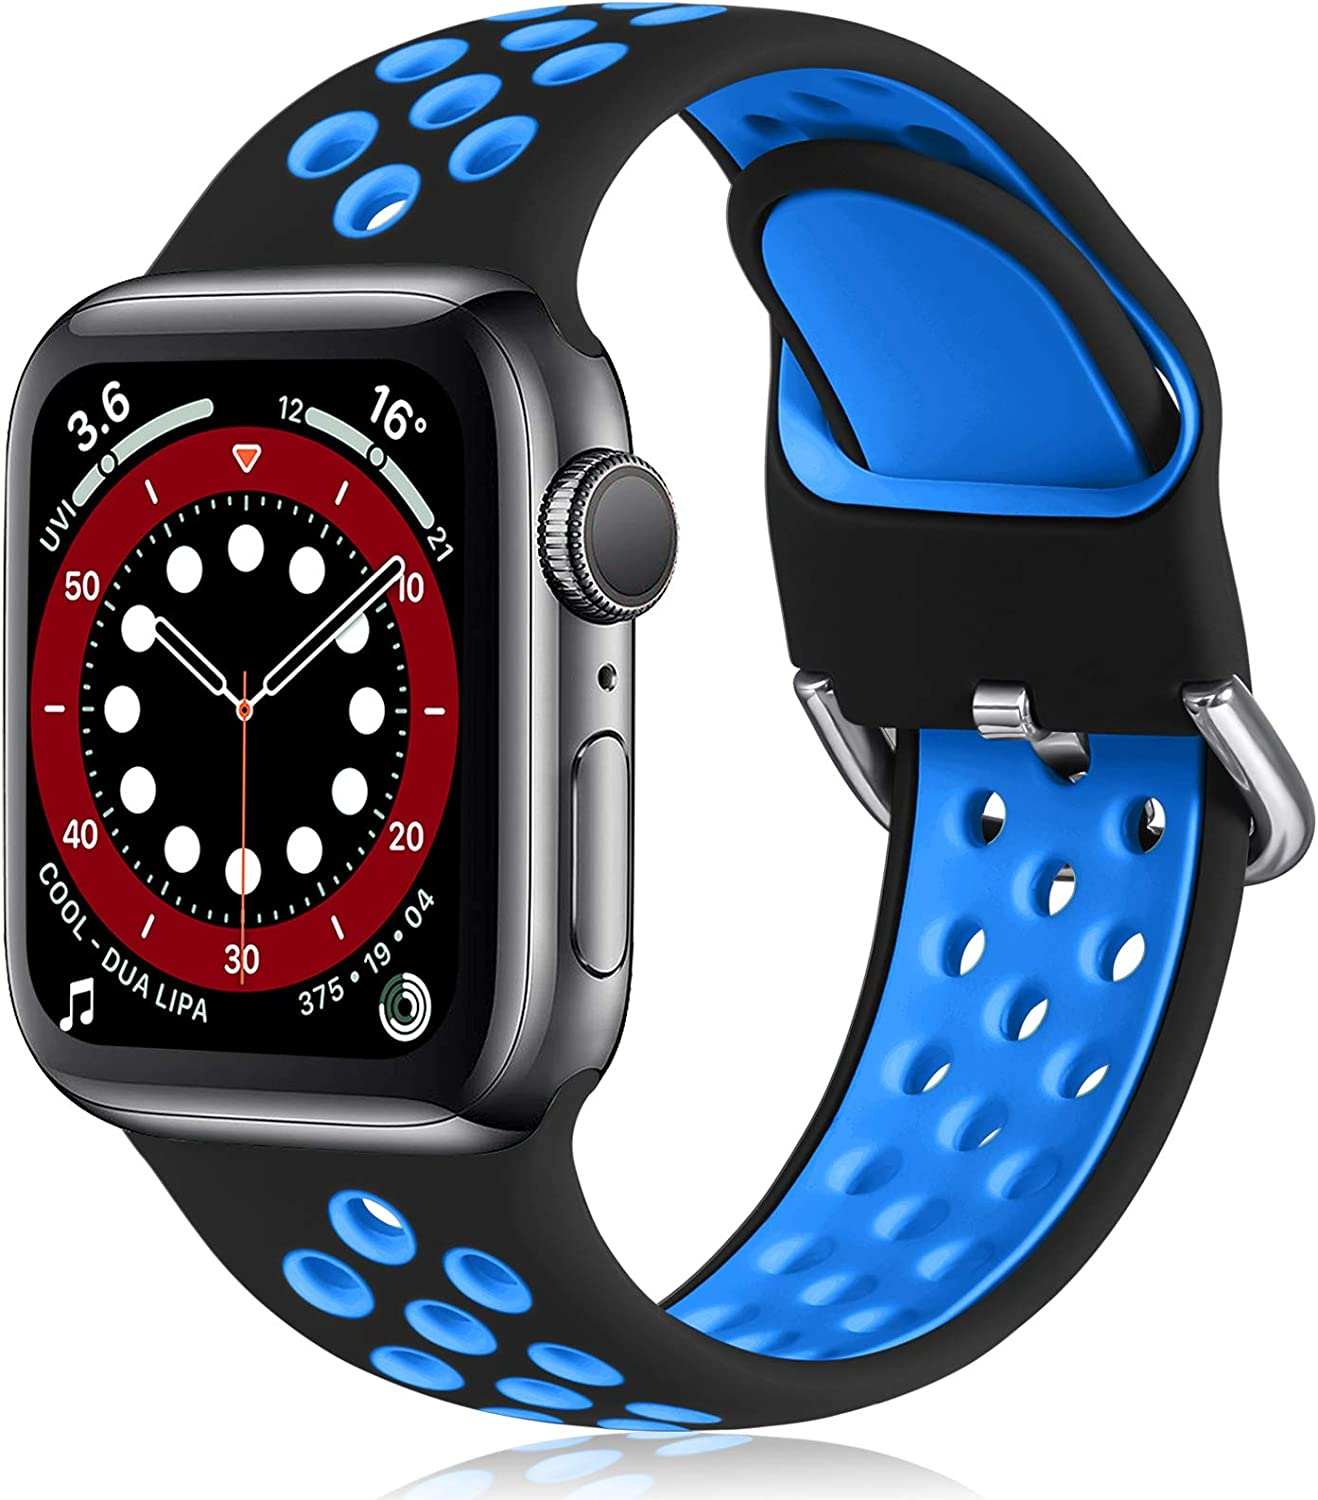 Witzon Compatible with Apple Watch Band 42mm 44mm Soft Silicone Waterproof Breathable Replacement Wristband Sport Bands for iWatch Series 1/2/3/4/5/6/SE Women Men, Black Blue, M/L